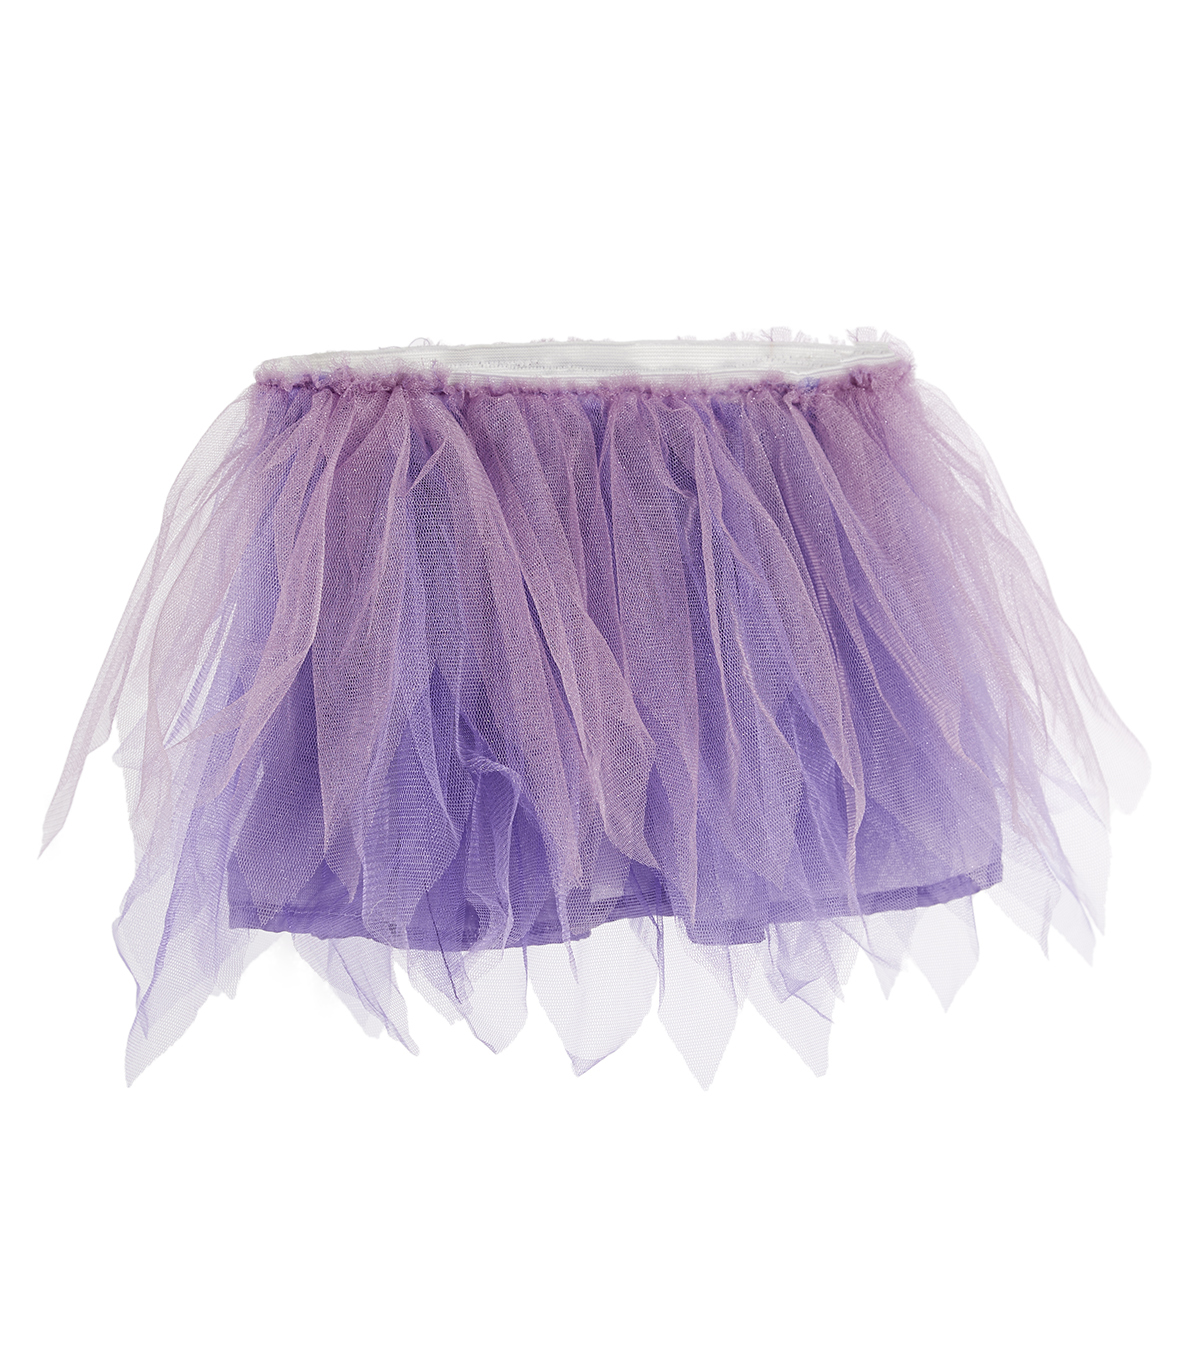 Fashion & Fluff™ Purple Jagged Tutu